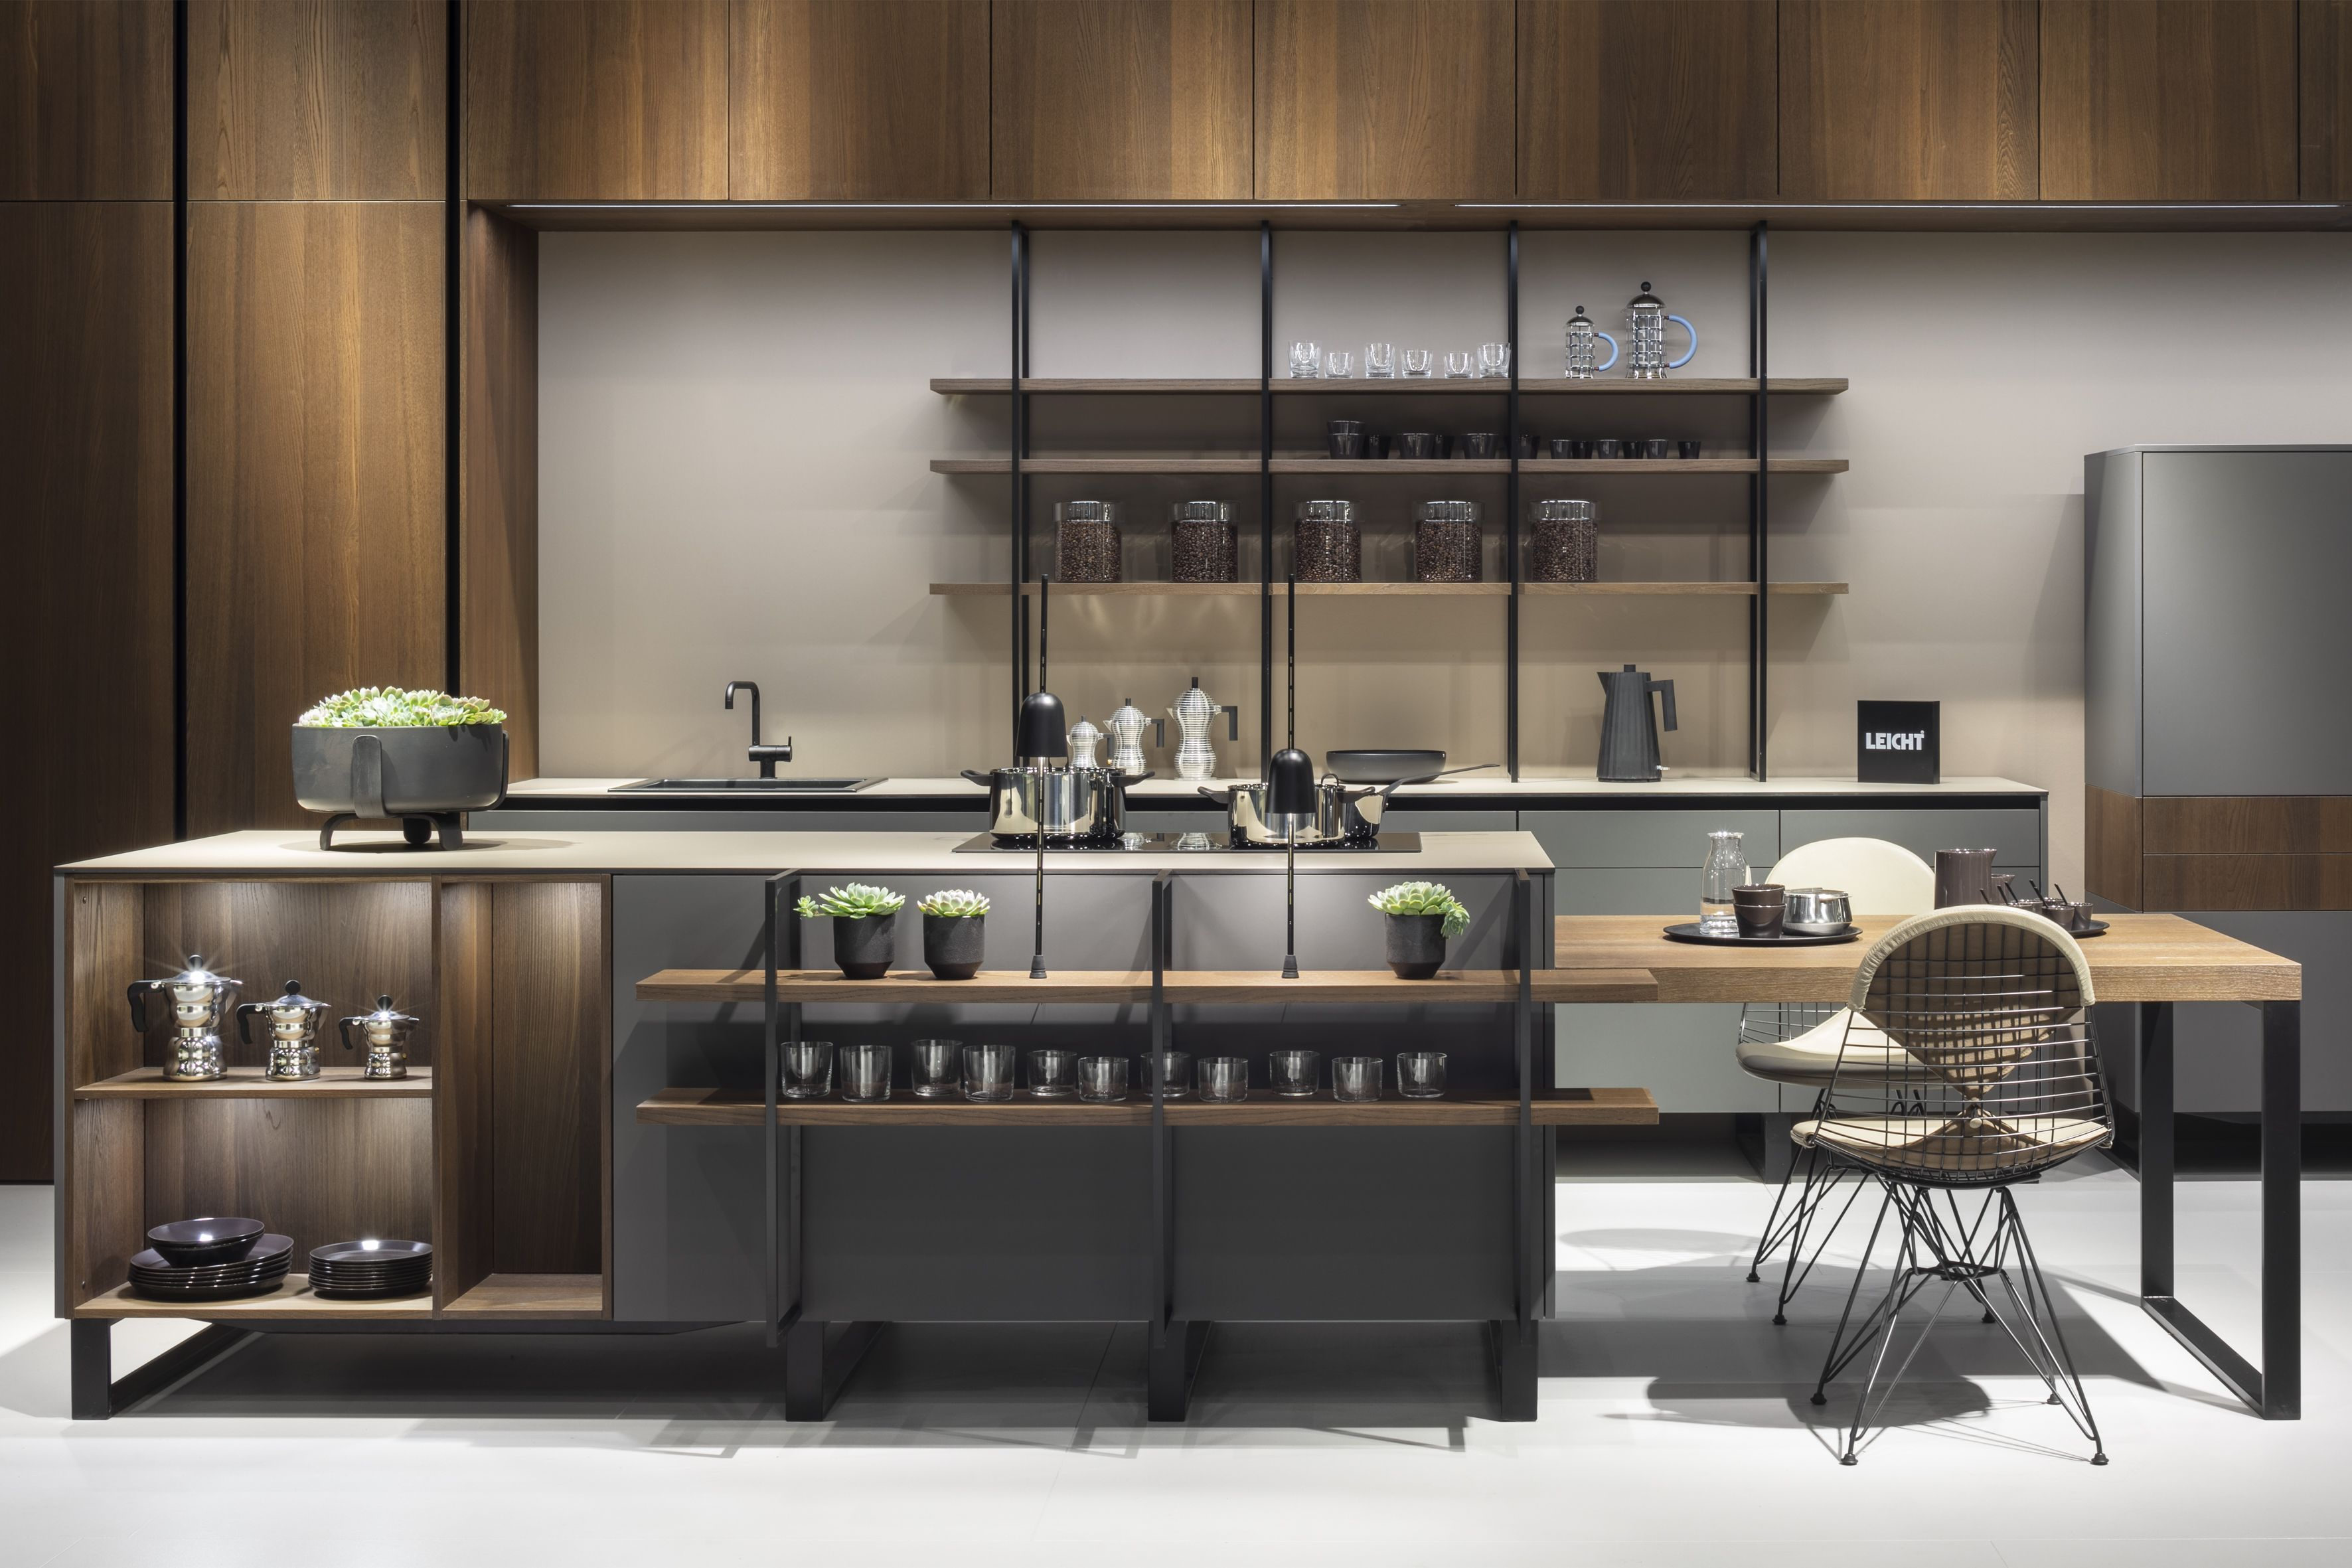 Best Pin By German Kitchen Center On 2019 Leicht Kitchens 400 x 300